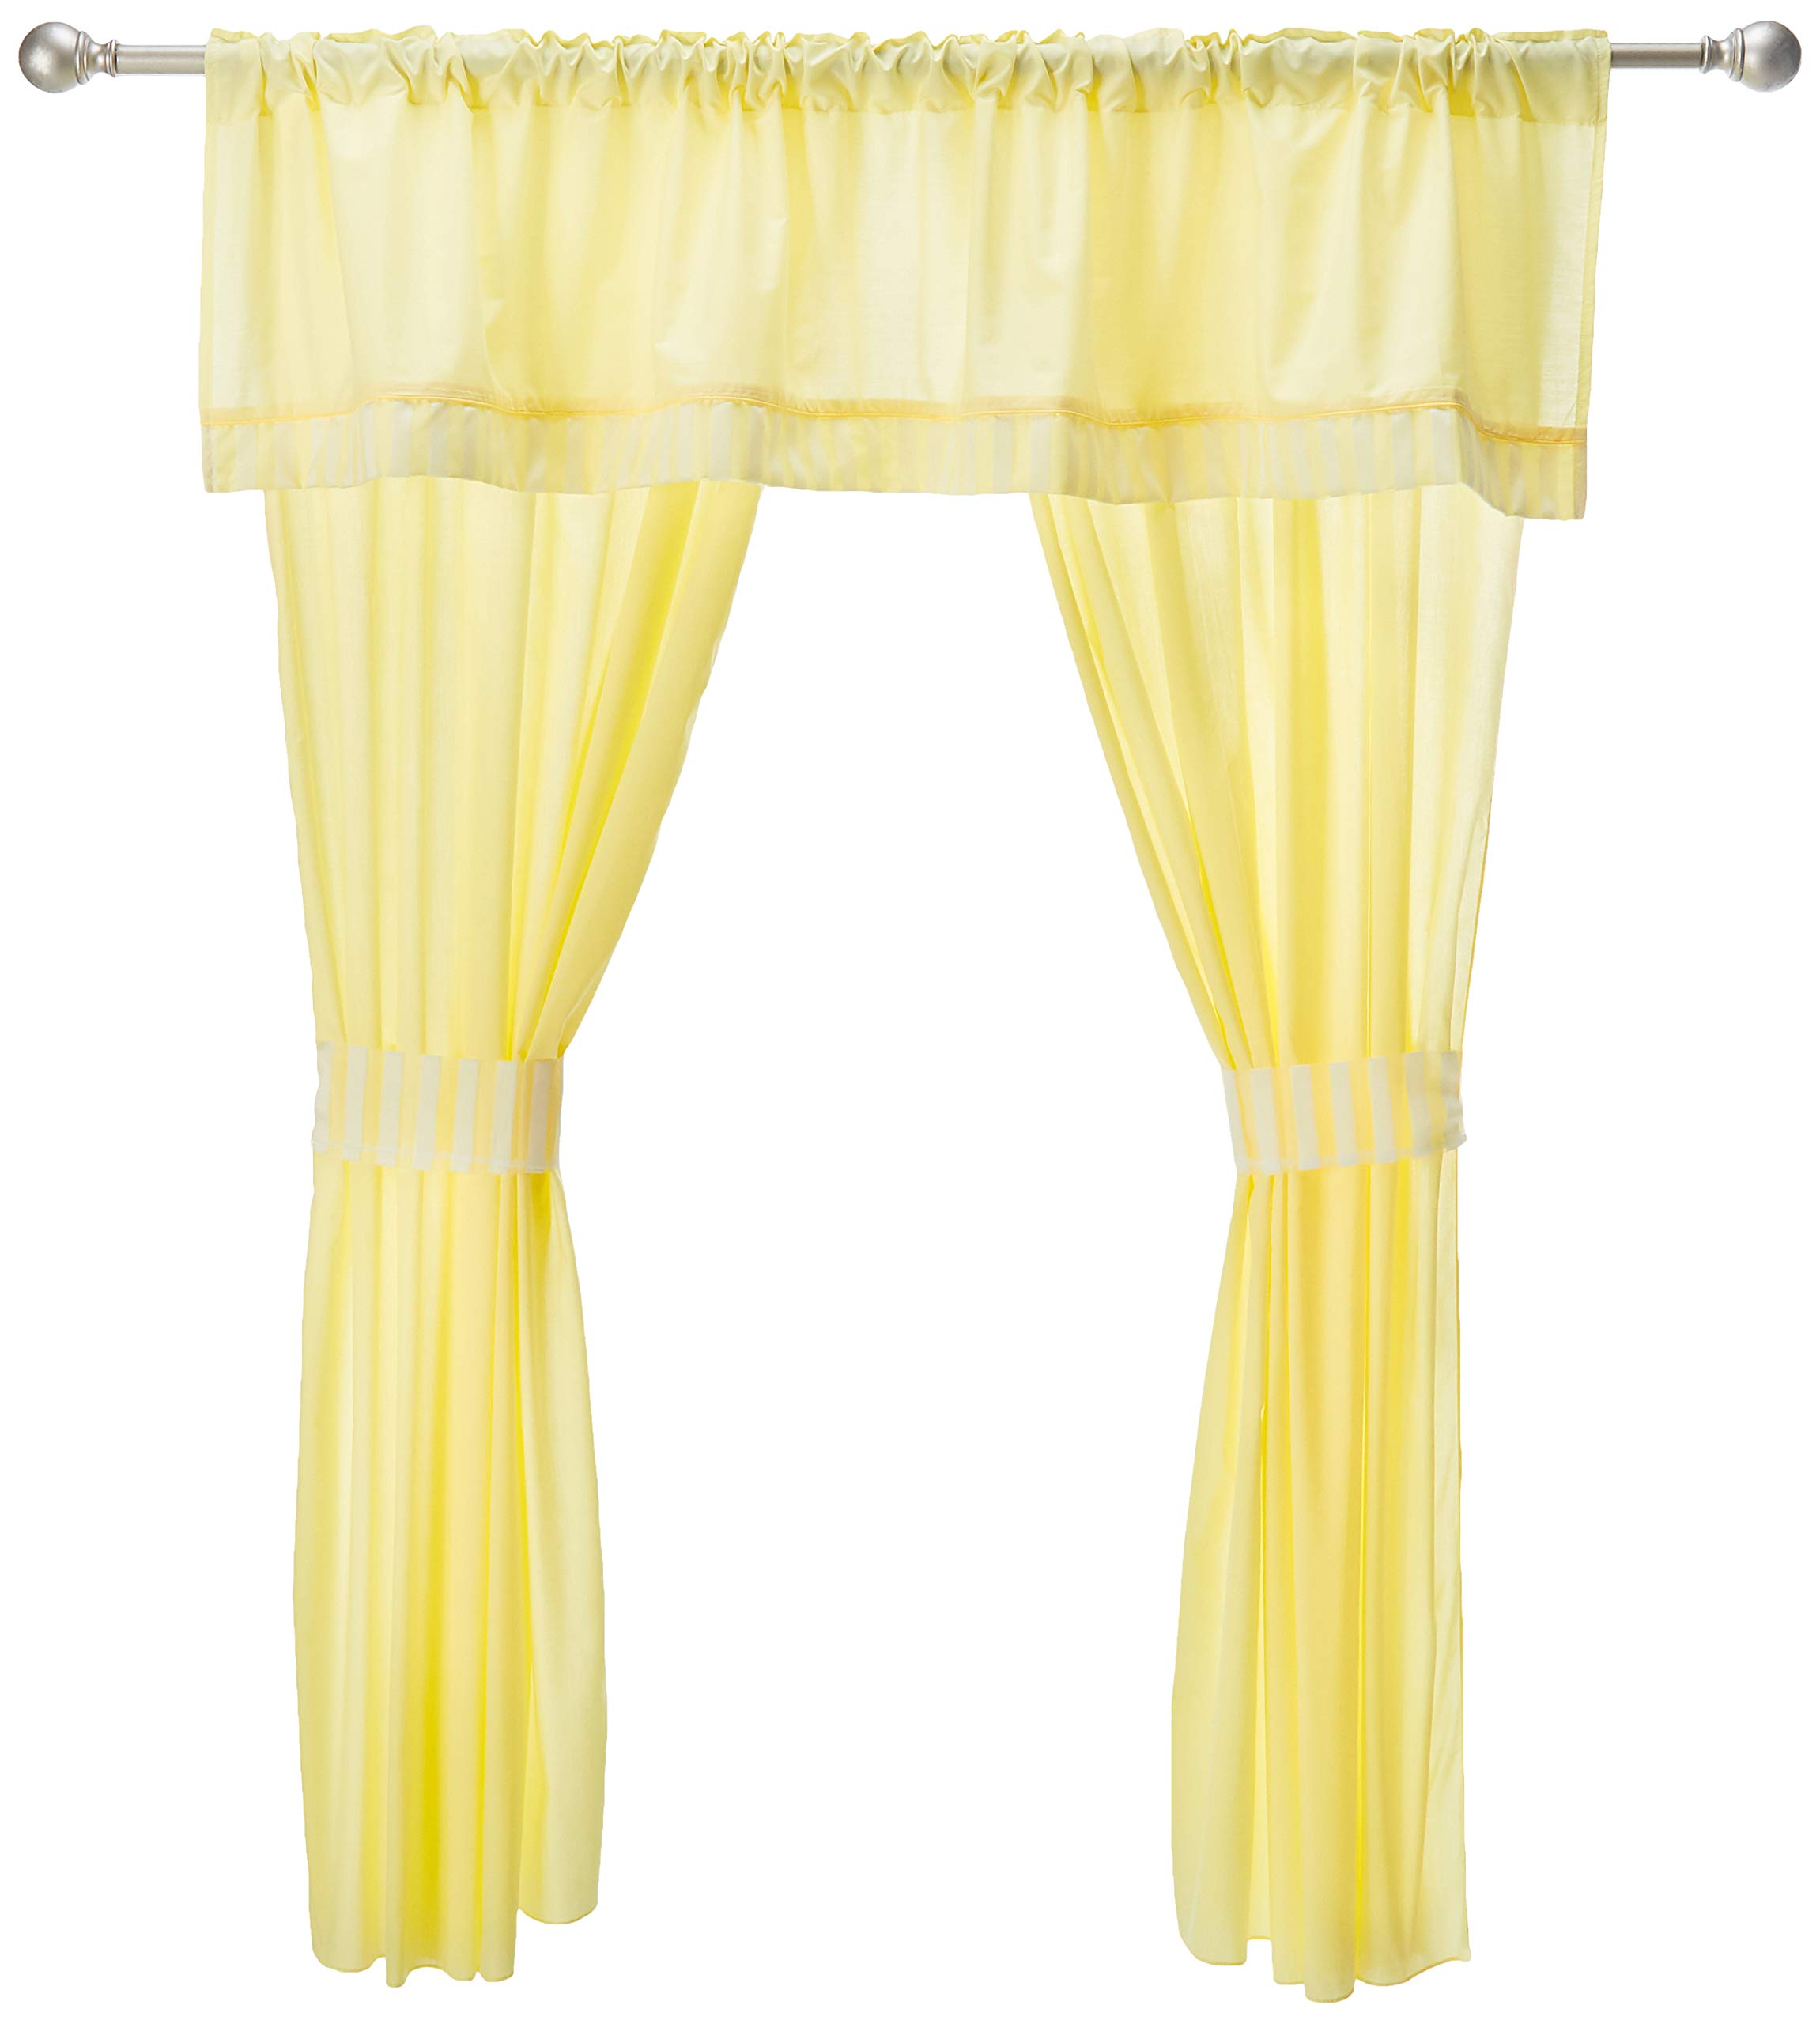 Baby Doll Candyland 5 Piece Window Valance and Curtain Set, Yellow by Baby Doll